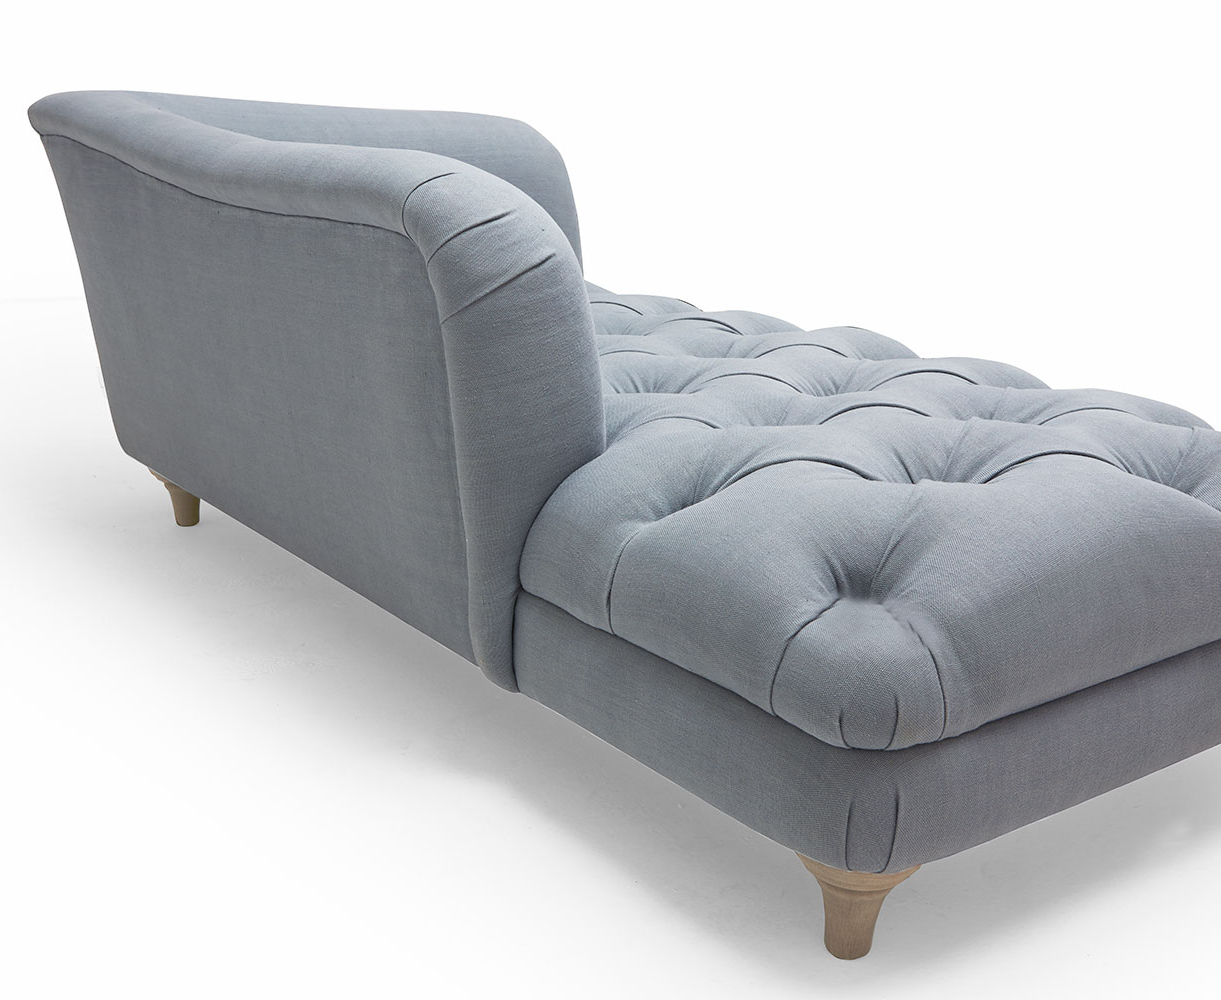 Sofa Chaiselongue Budm Slumberjack Chaise sofa Chaise Longue Loaf